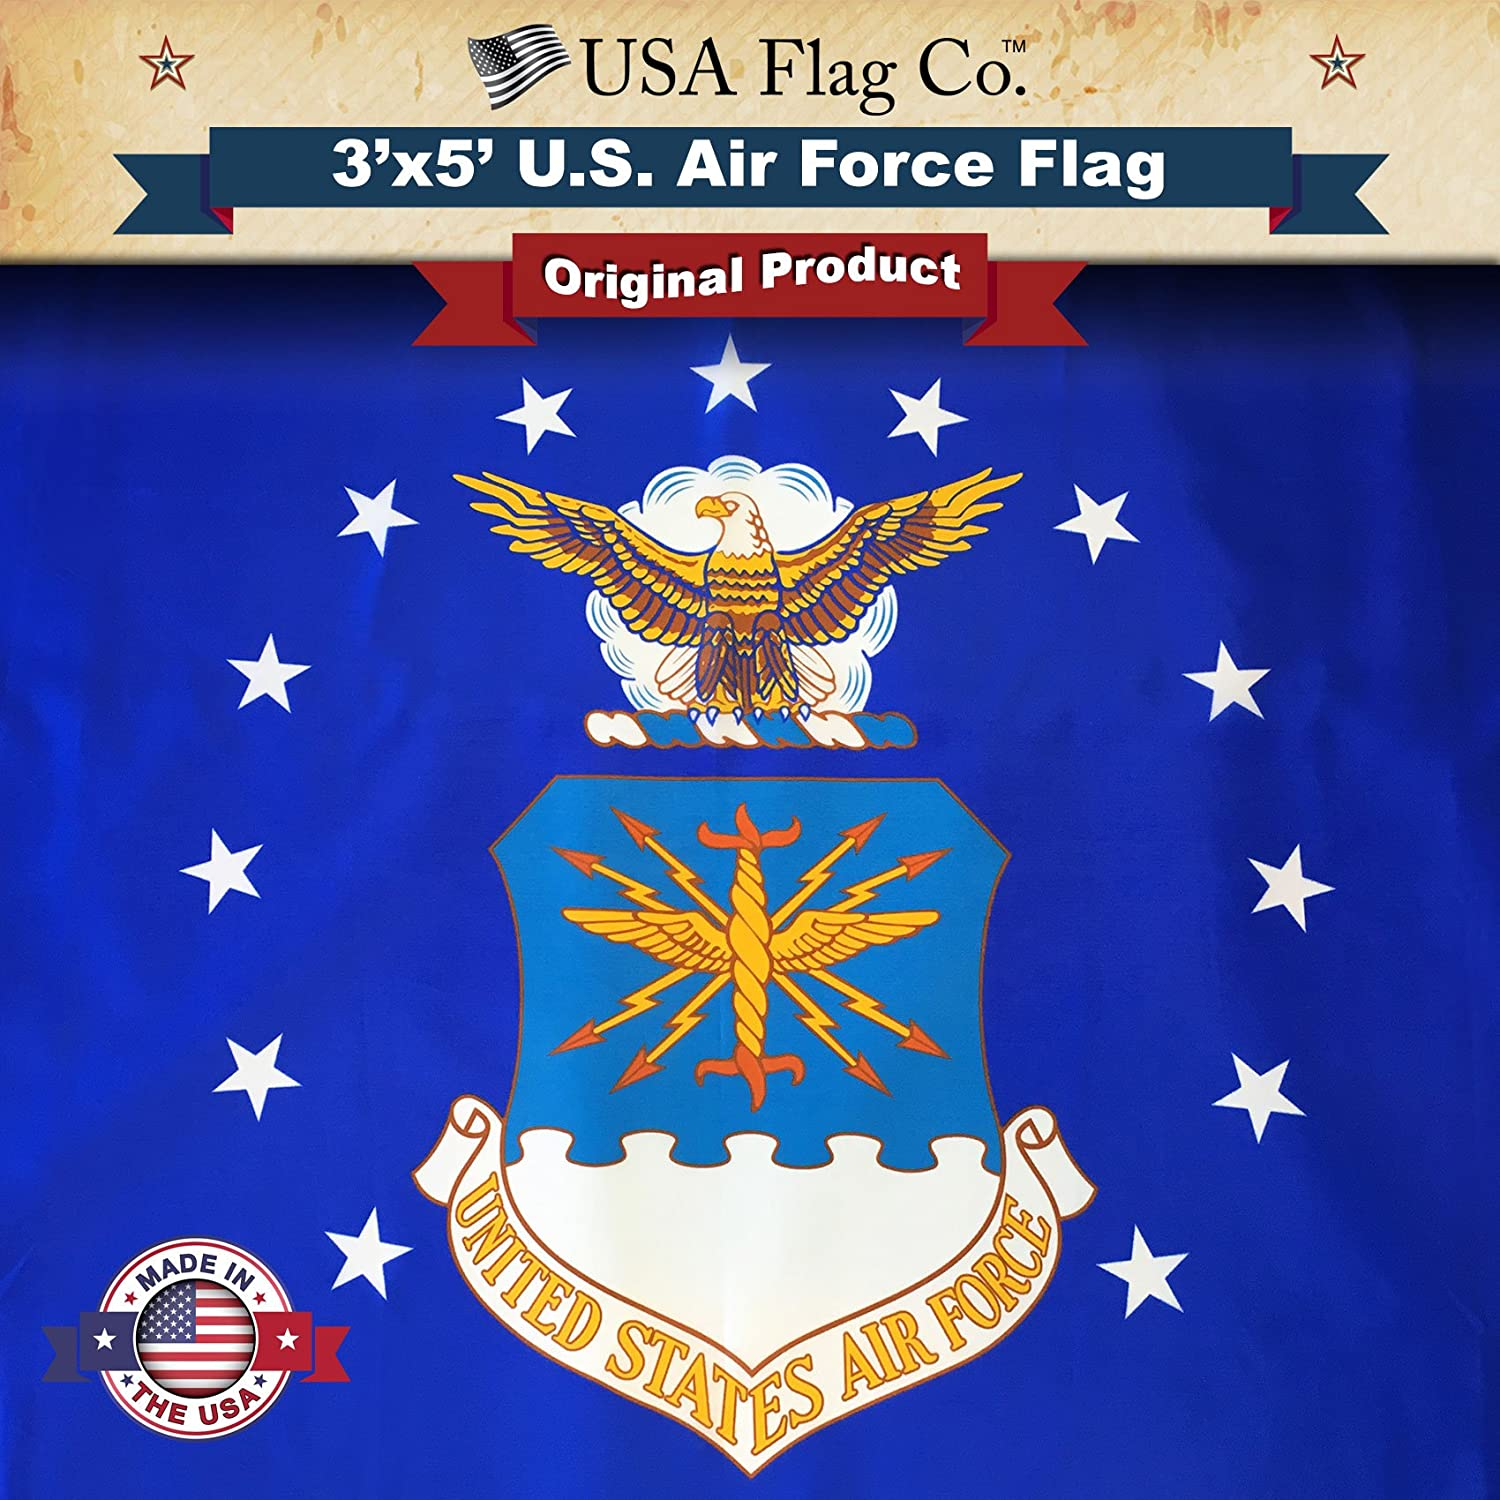 USA Flag Co. US Air Force Flag is 100% American Made: The Best 3x5 Outdoor USAF Flags, (Made in USA) for Prime Members and Amazon A to Z Guarantee.